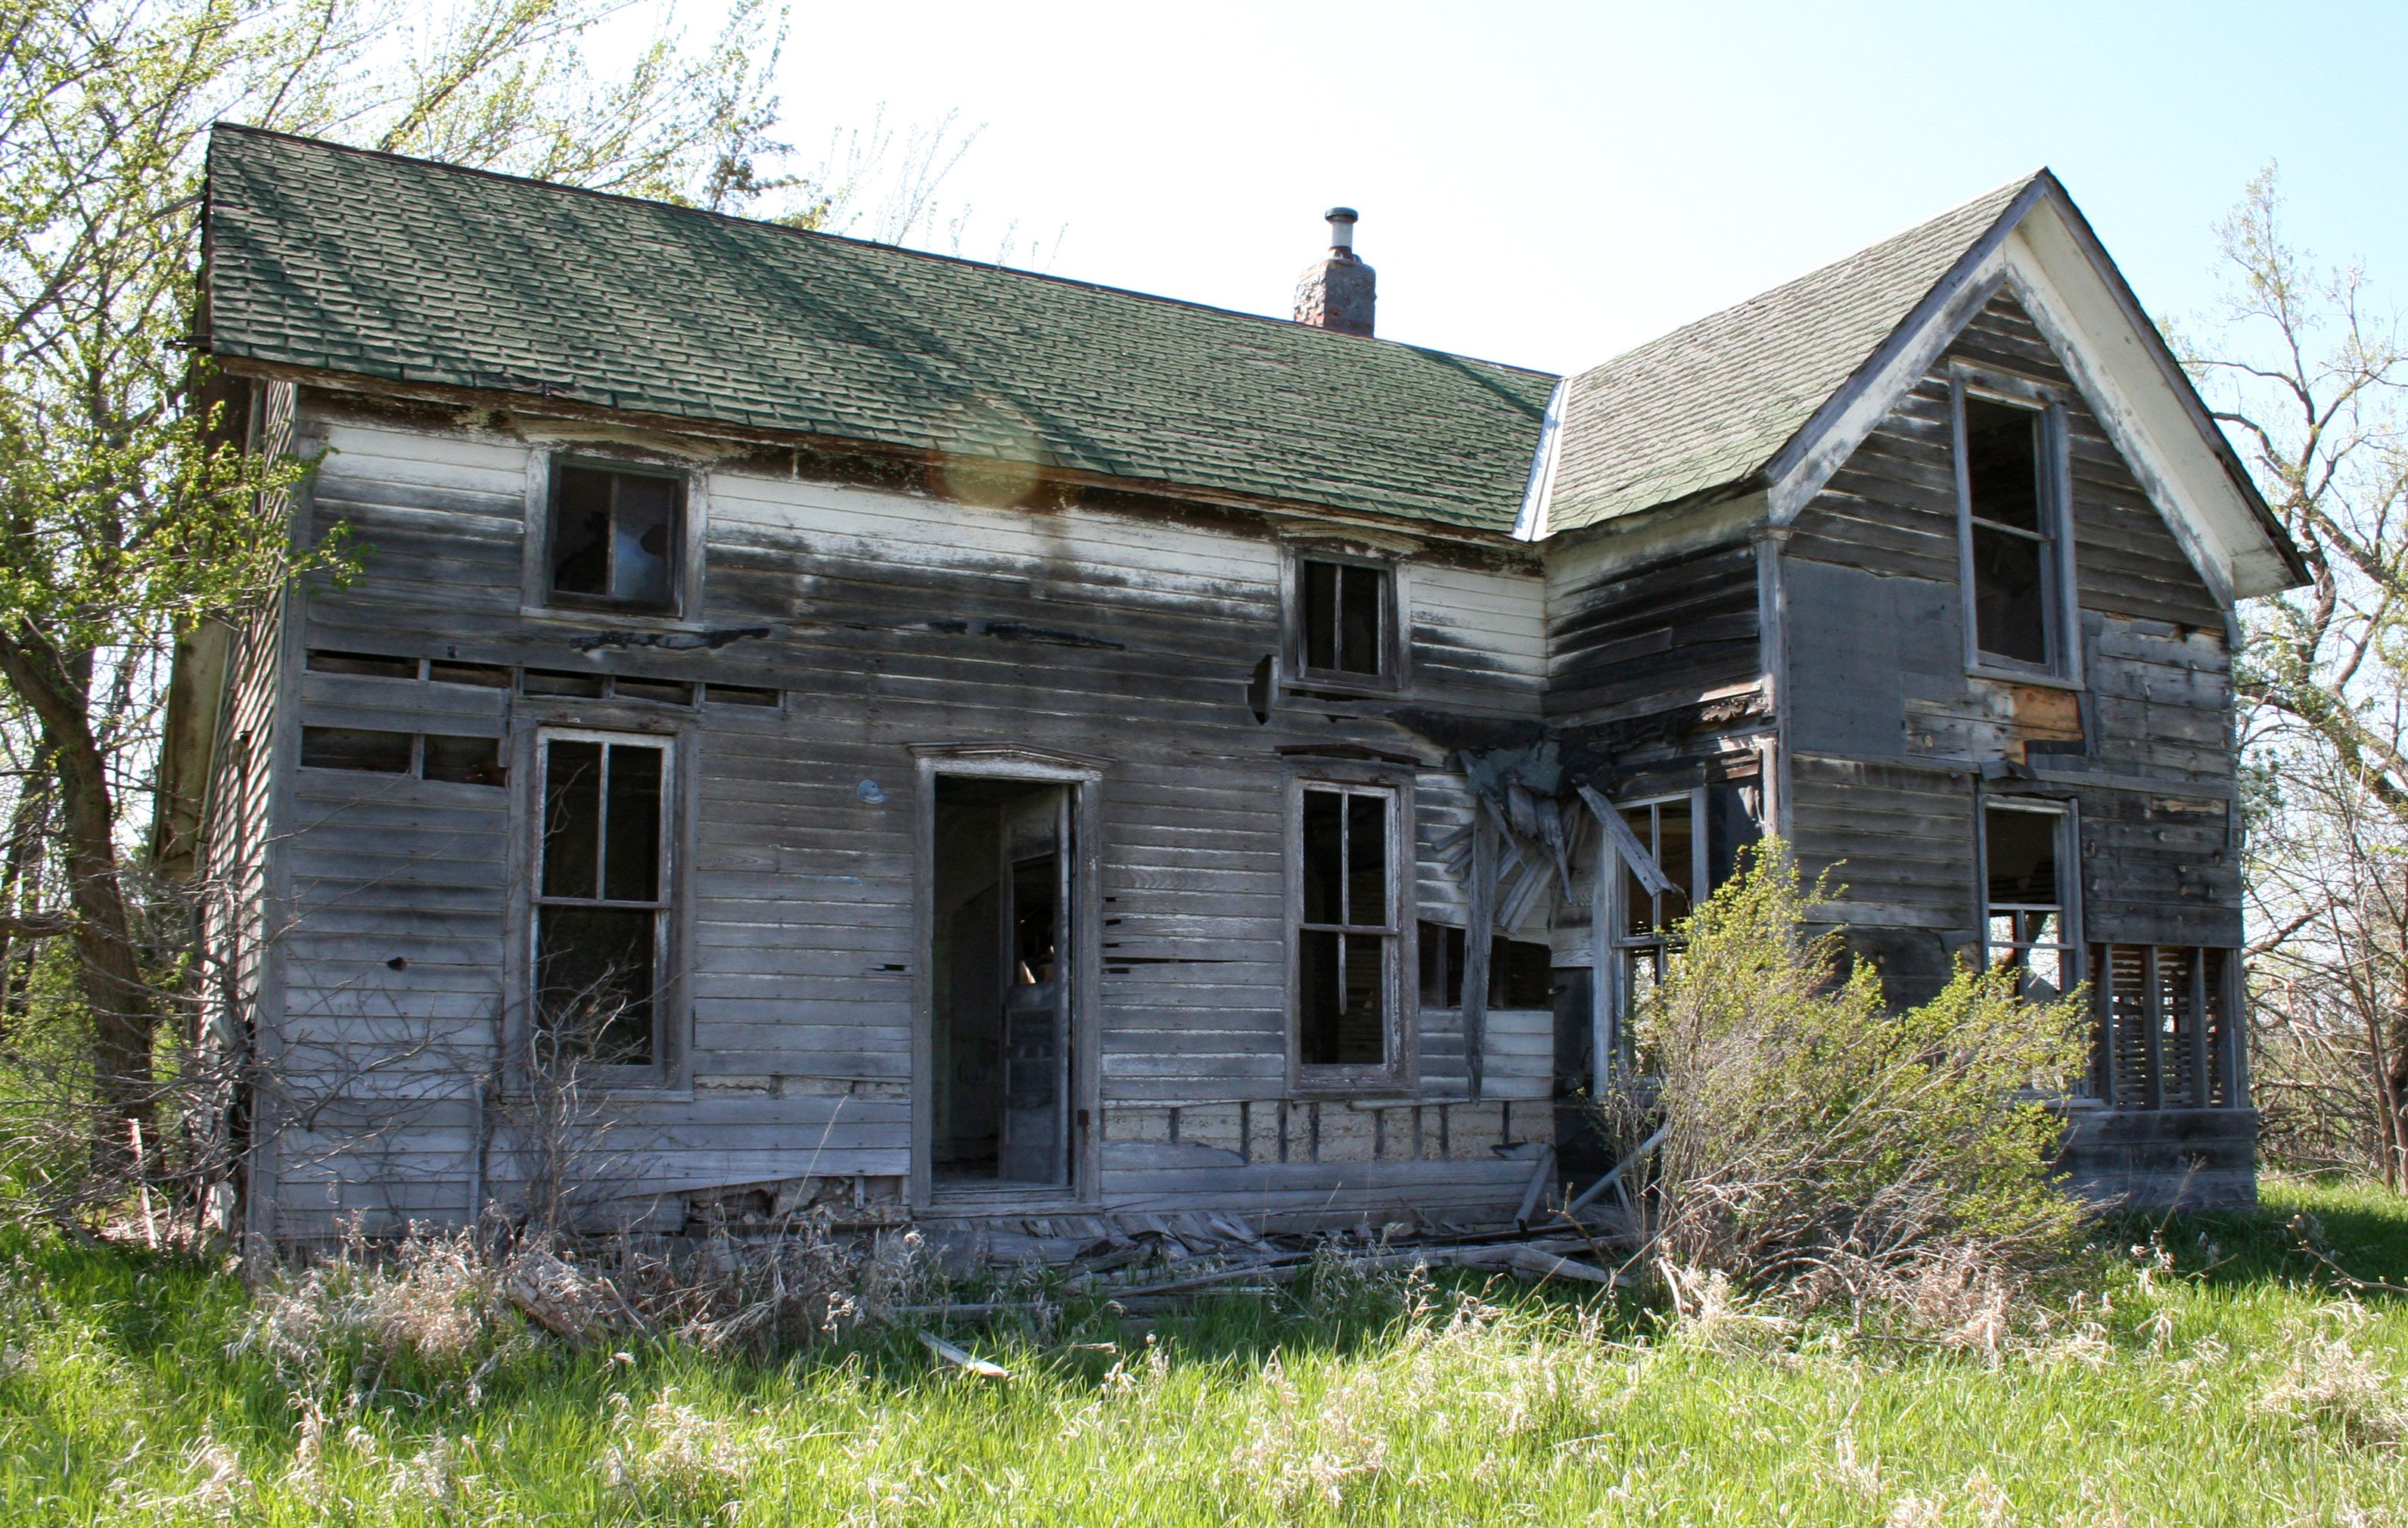 This Photo Was Taken At An Abandoned House Somewhere Between Hiawatha And Holton Kansas This Stock Is Free To Use